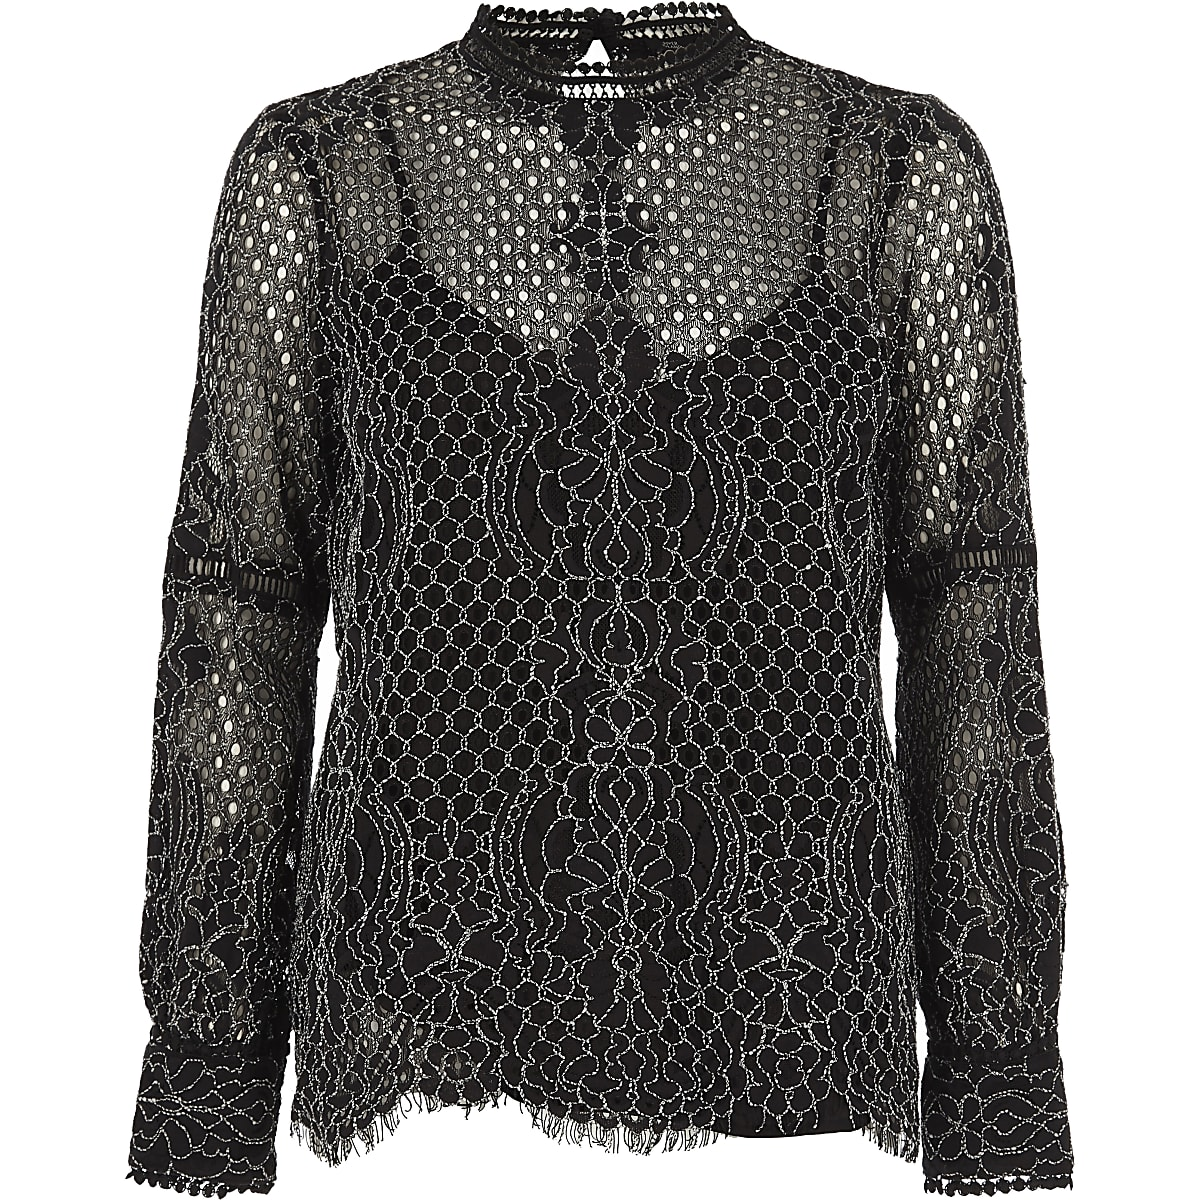 c792f25dc8ff6c Black lace high neck long sleeve top - Blouses - Tops - women